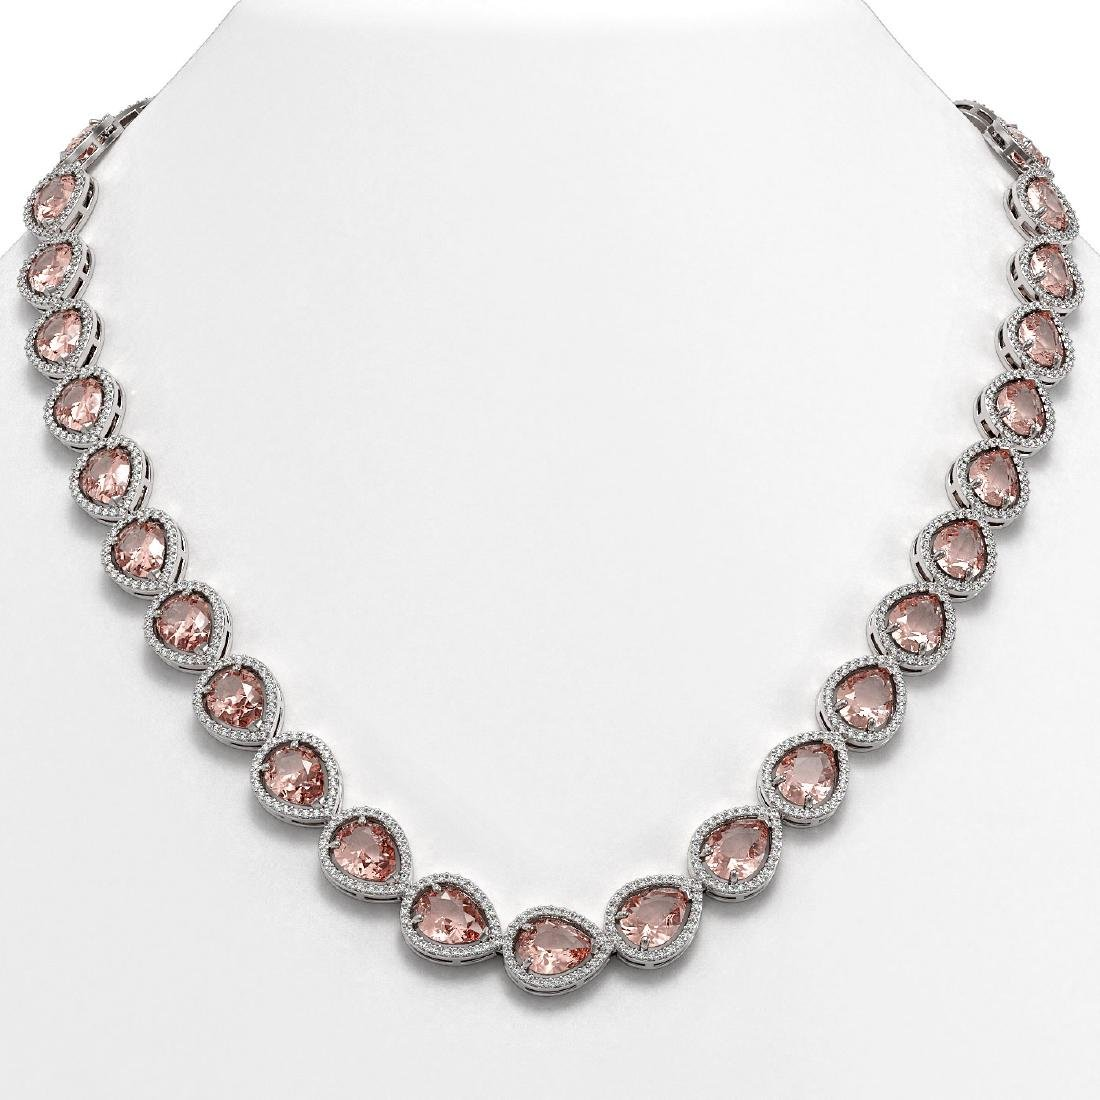 41.6 CTW Morganite & Diamond Halo Necklace 10K White